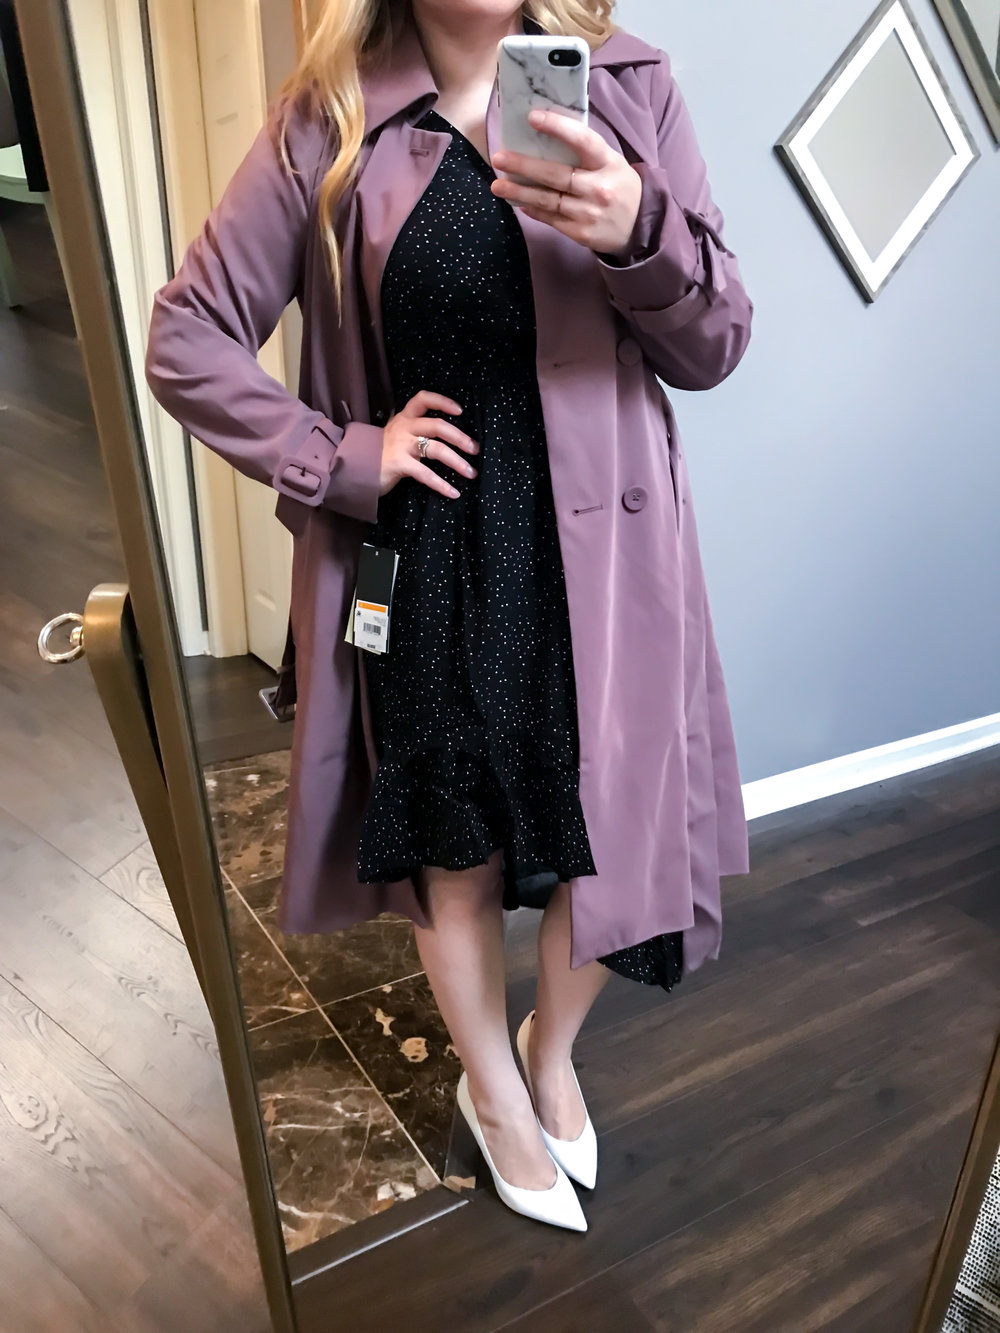 Maggie a la Mode Nordstrom Anniversary Sale 2018 London Fog Heritage Modern Trench Coat in Adobe, Joie Asymmetrical Dotted Chiffon Dress, Marc Fisher LTD Hesla Pumps